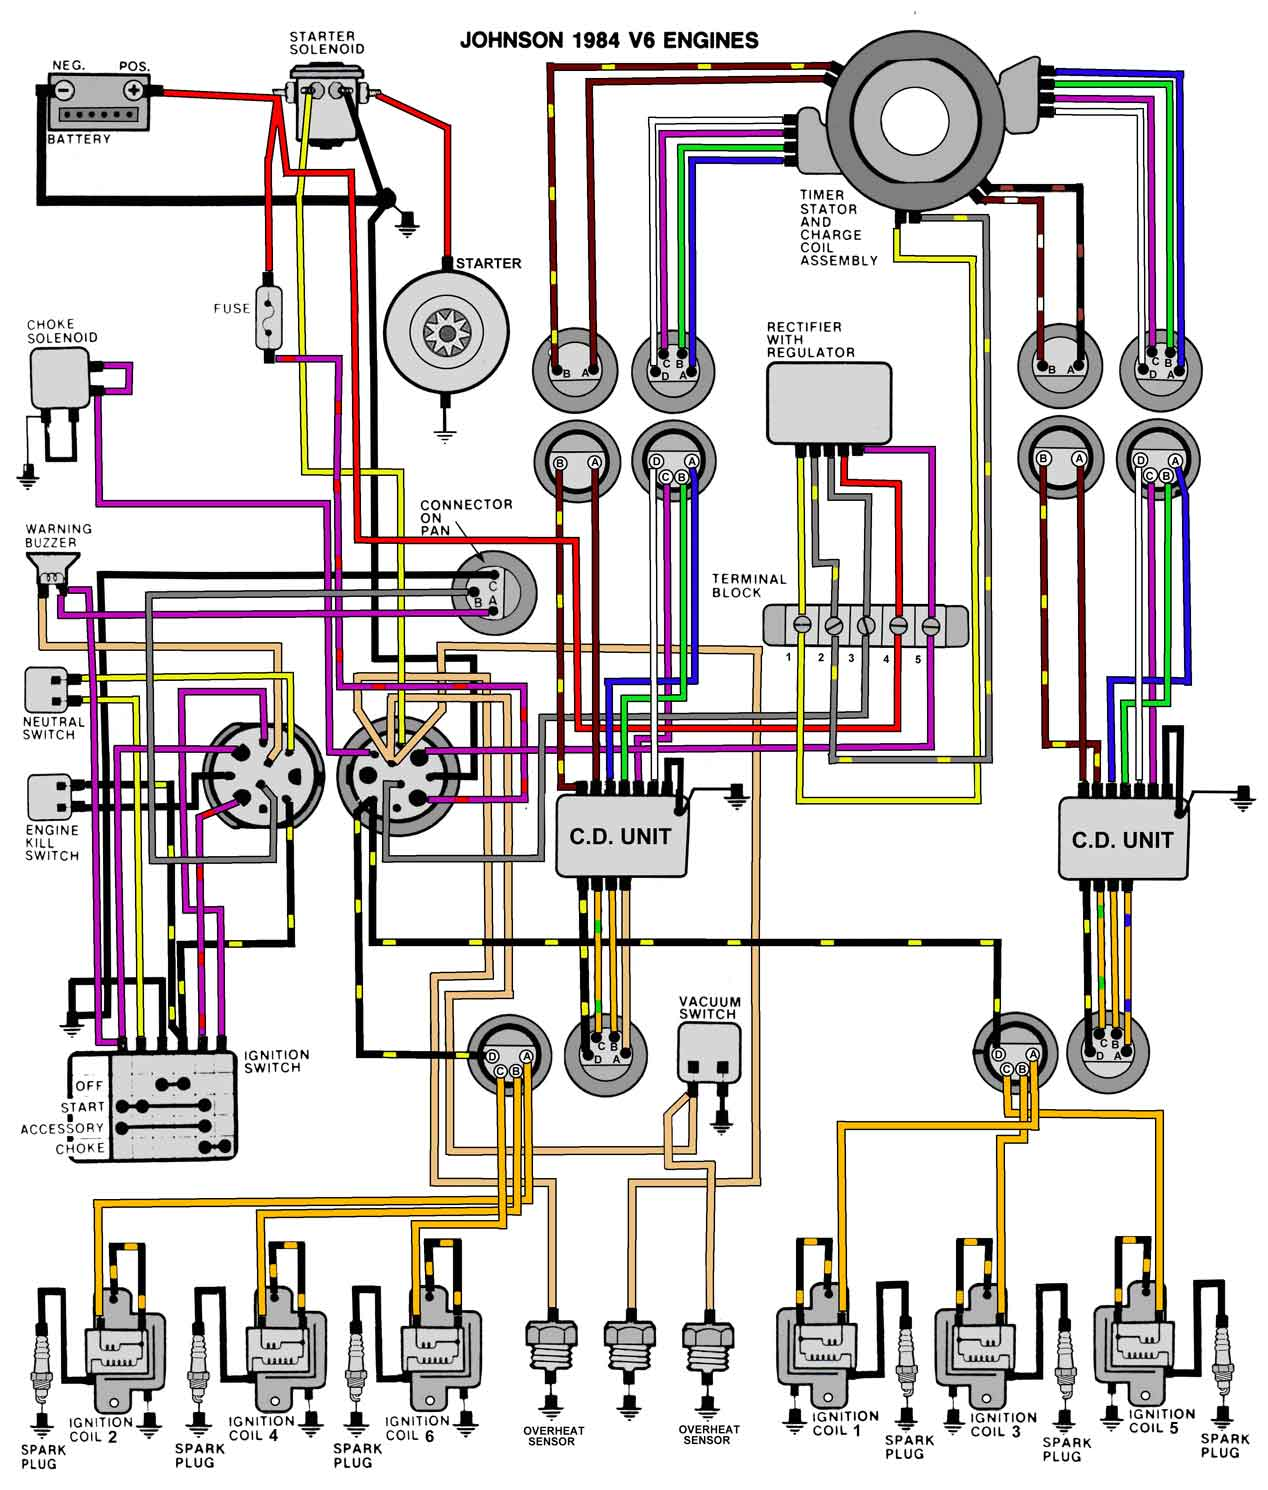 84_V6 johnson wiring harness diagram on johnson download wirning diagrams perkins 4.108 wiring harness at mifinder.co